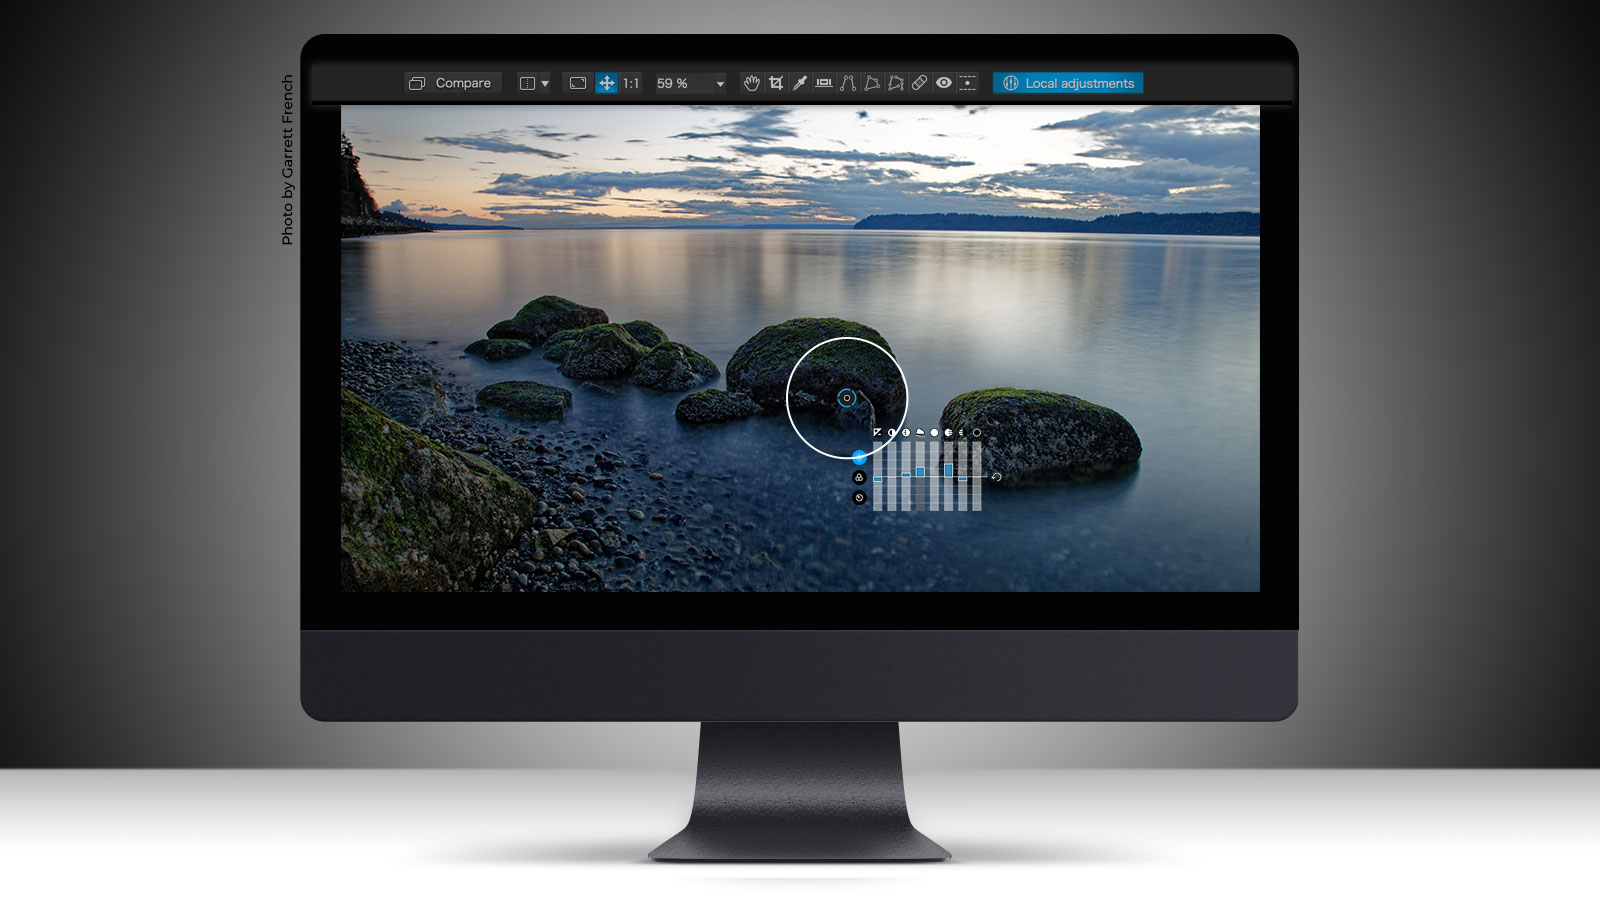 DxO PhotoLab 2 update adds image searches and improved ClearView